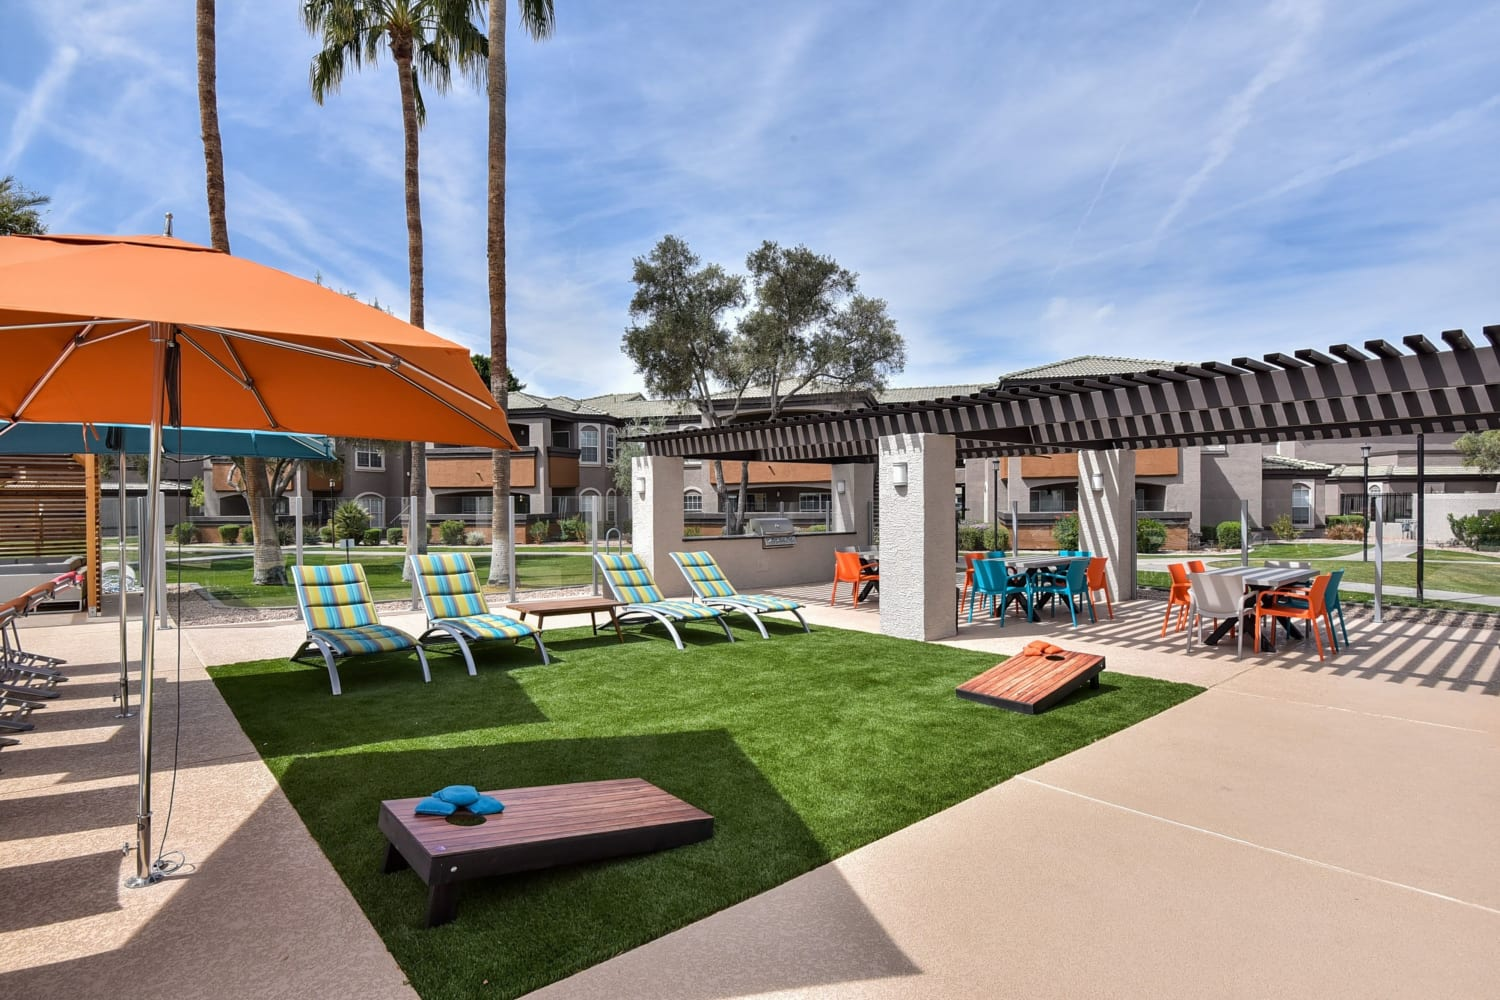 Outdoor lawn games at Luxe @ Ocotillo in Chandler, Arizona